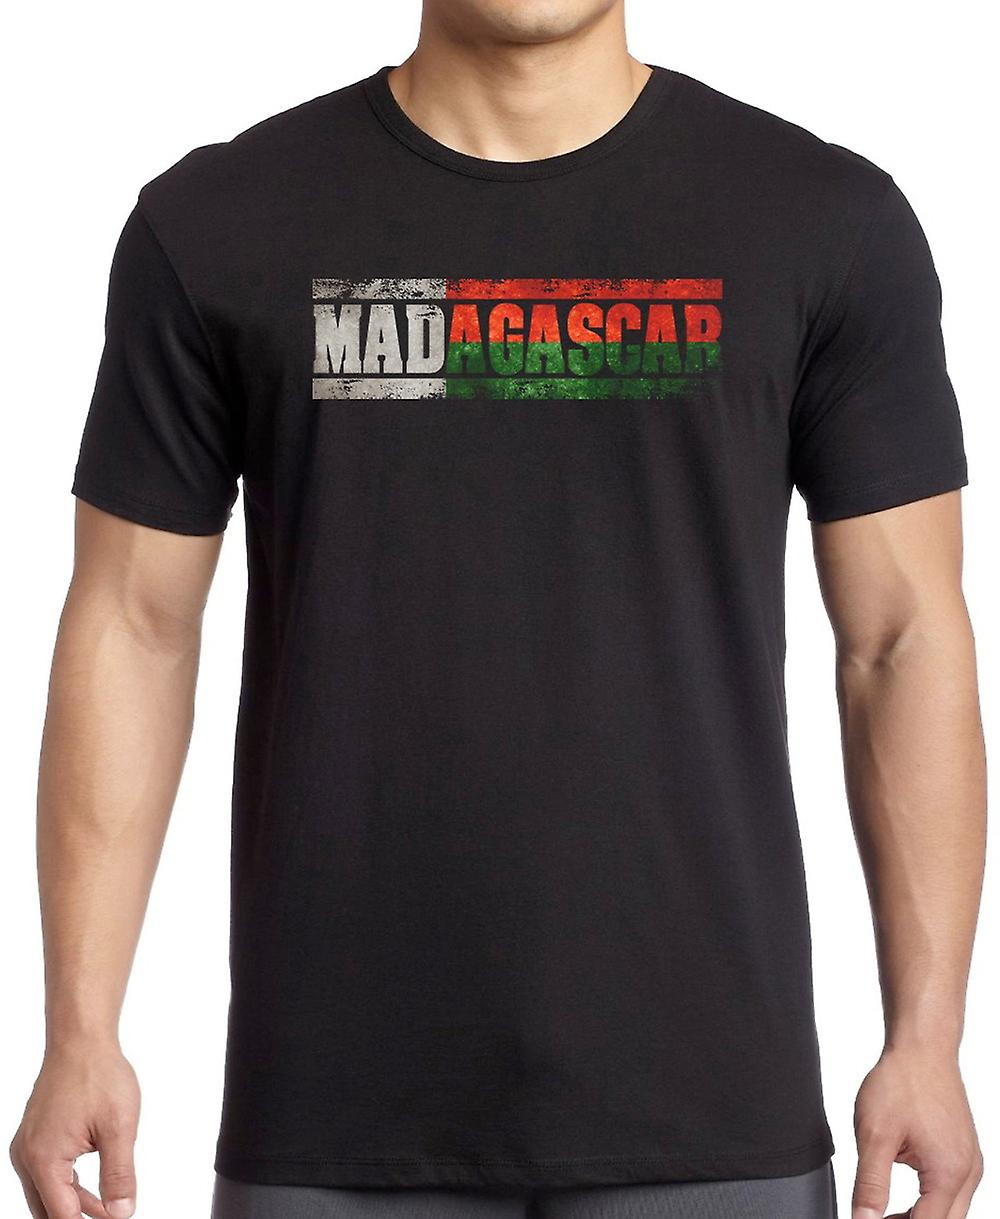 Madagascar_ Flag - Words T Shirt